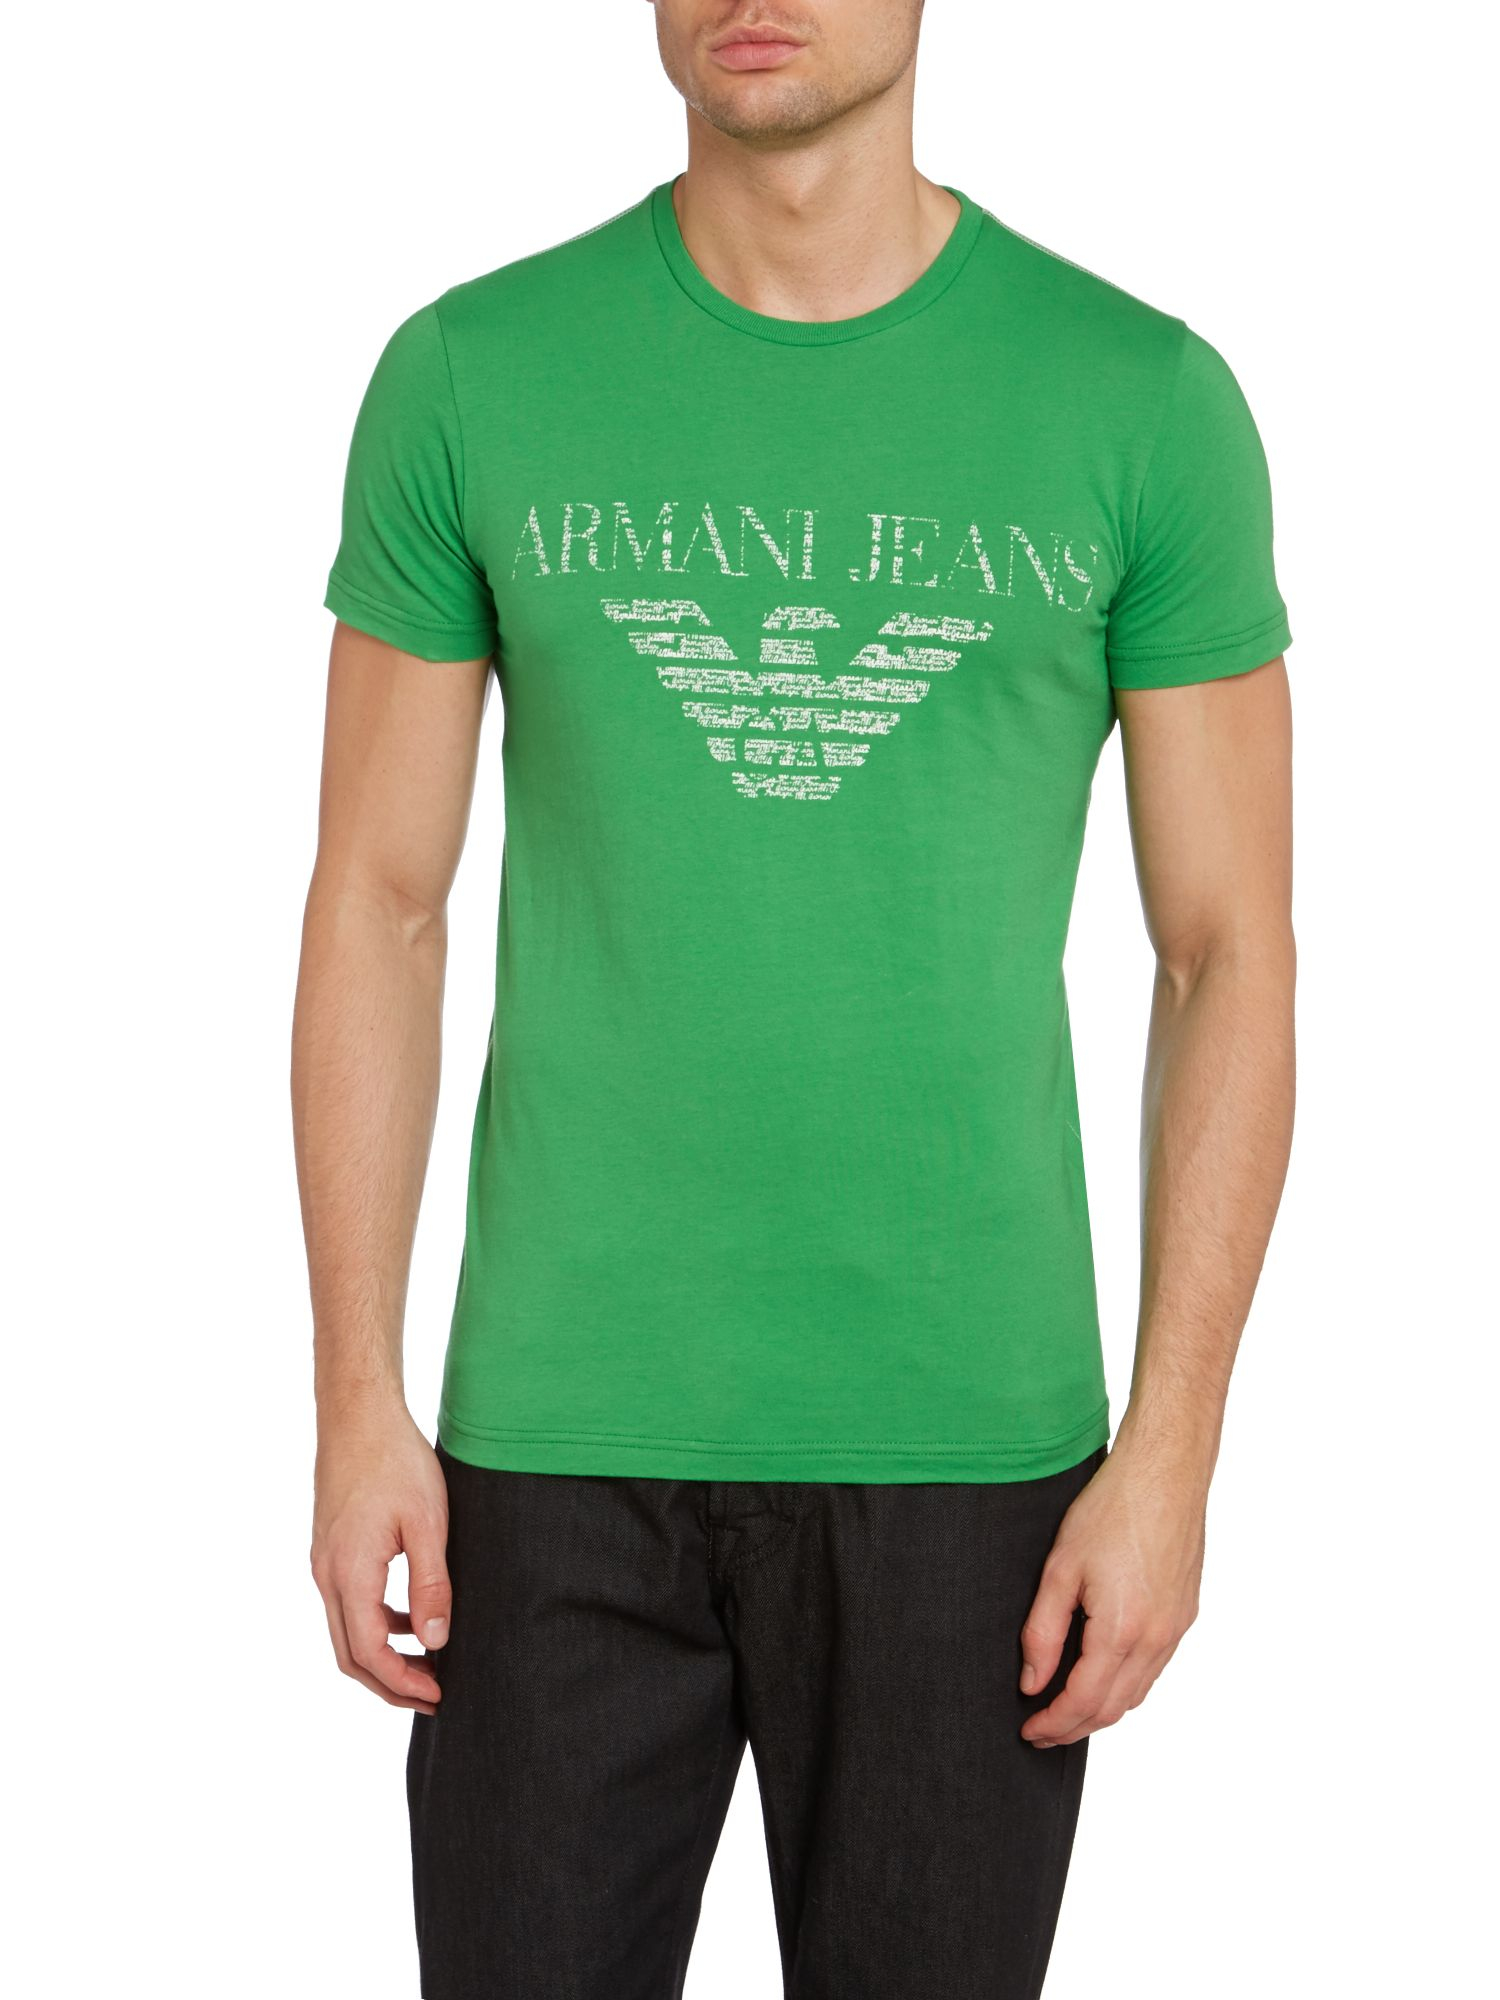 Armani jeans armani pocket logo print t shirt in green for for Sustainable t shirt printing